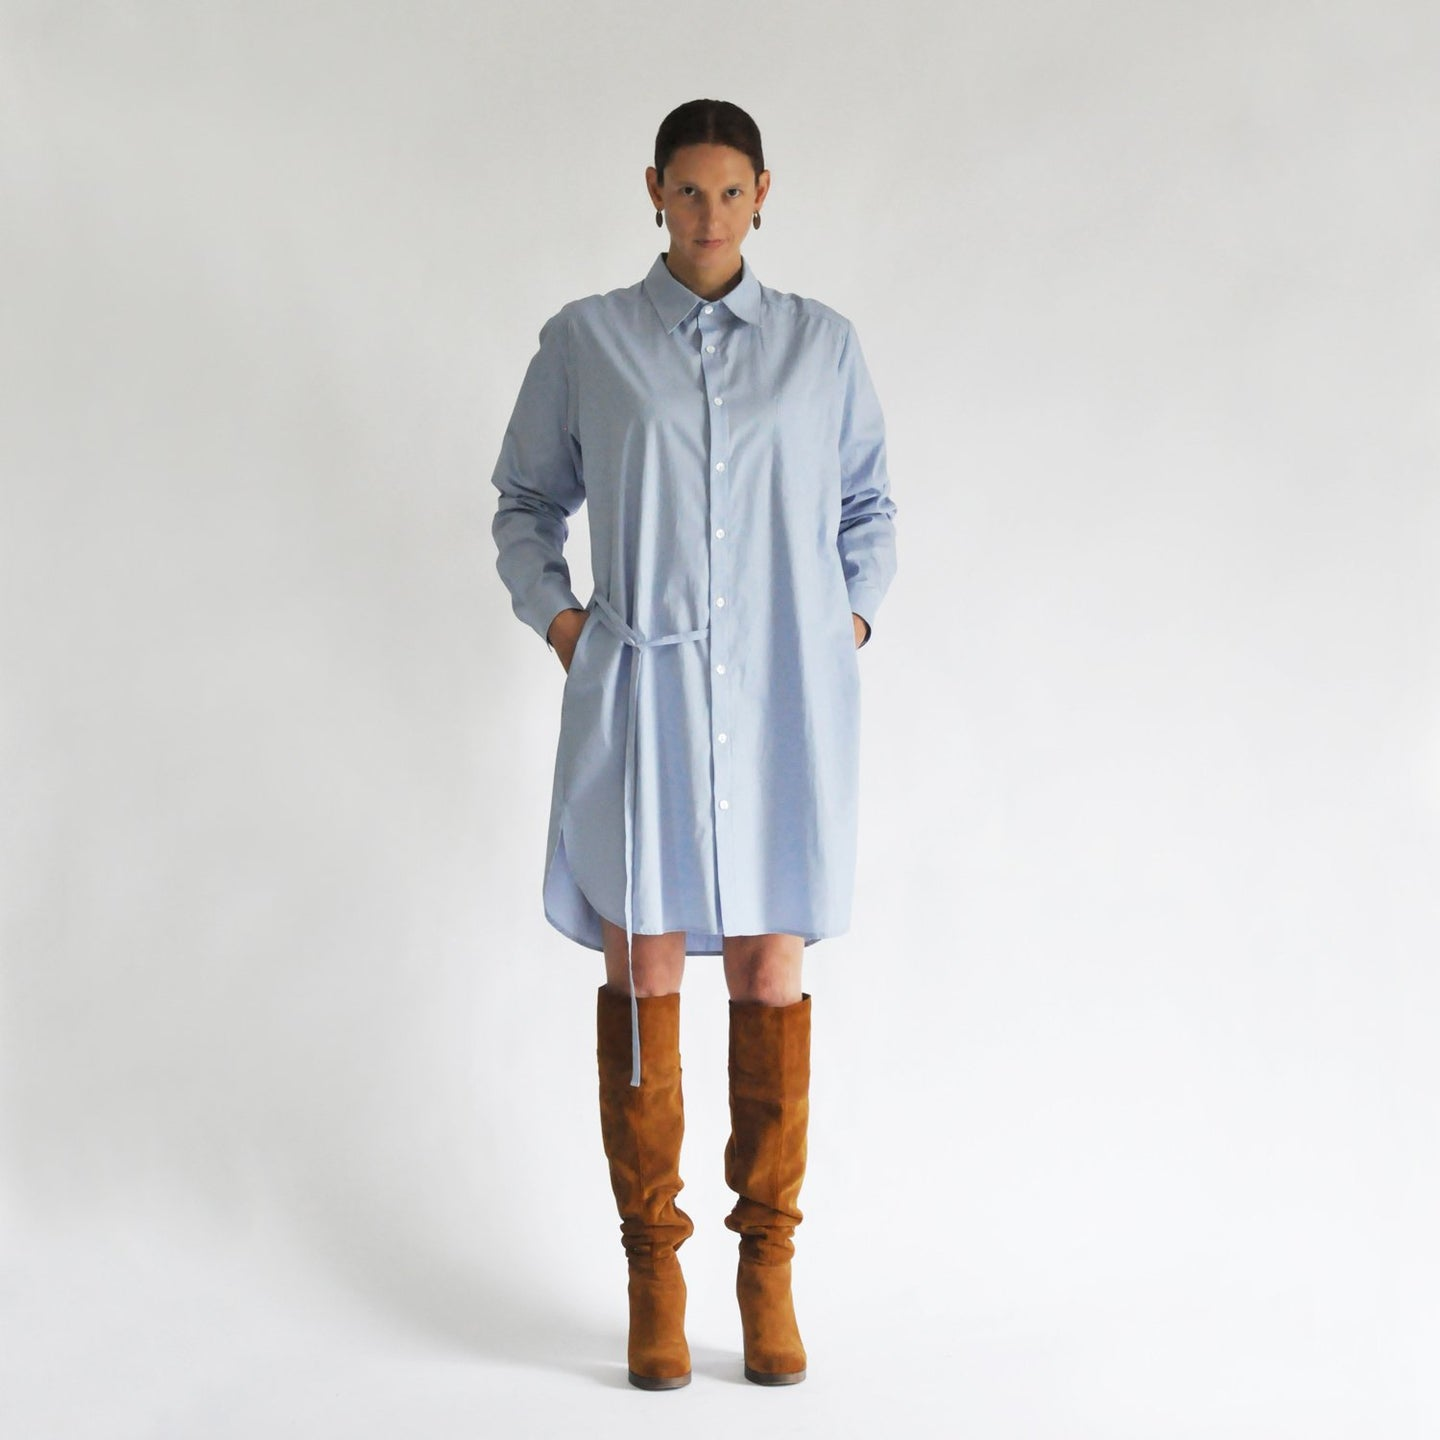 Shirt 'Axl' in blue cotton with asymmetrical draw string SHIRTS from EVA D. curated by pu·rist